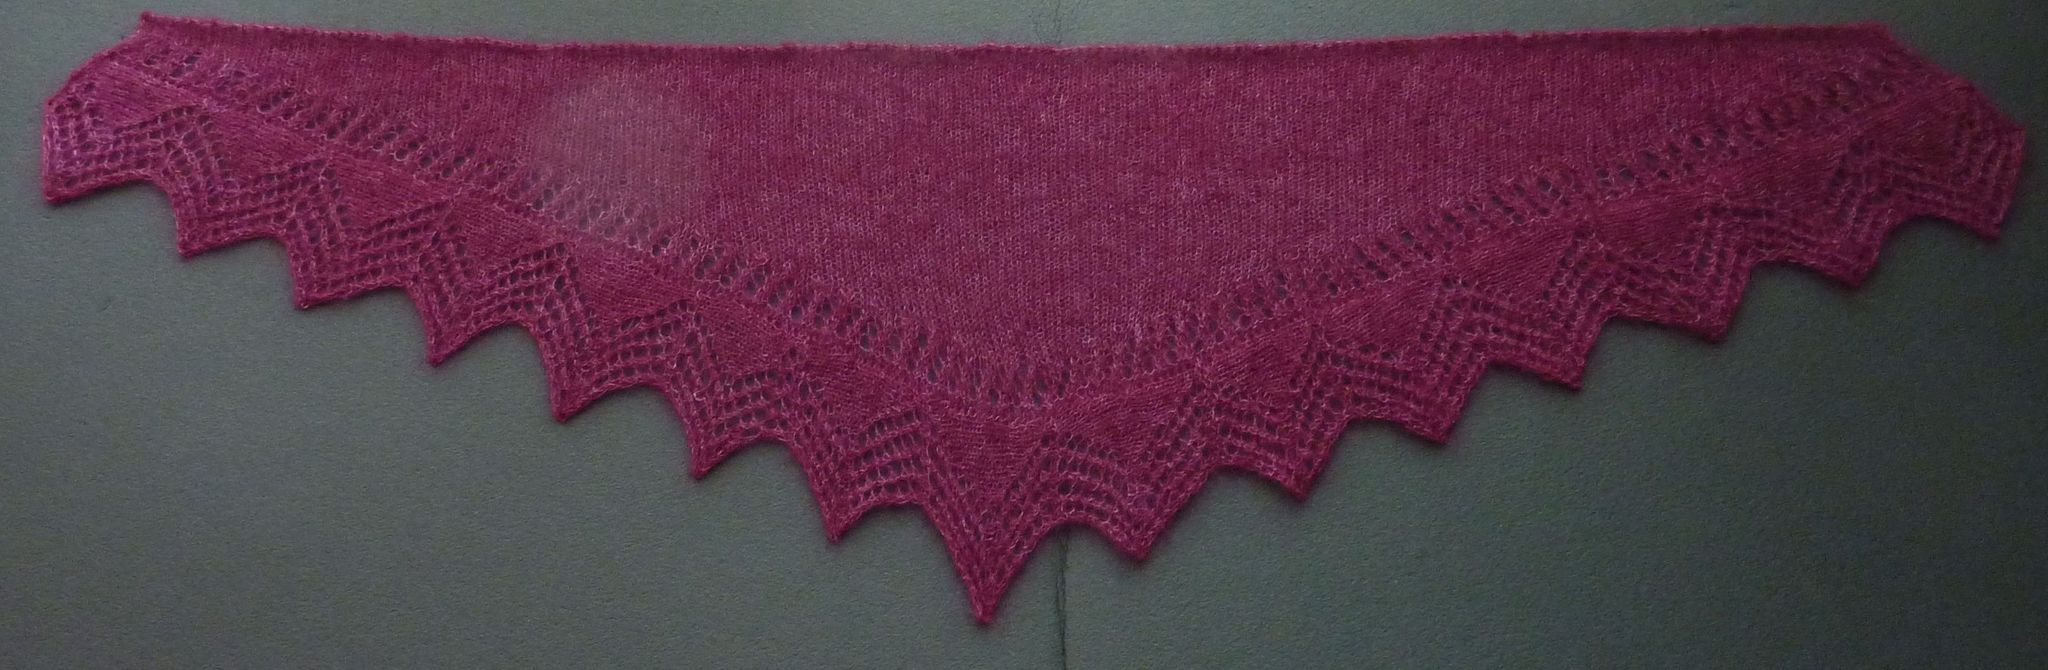 Cassis shawlette